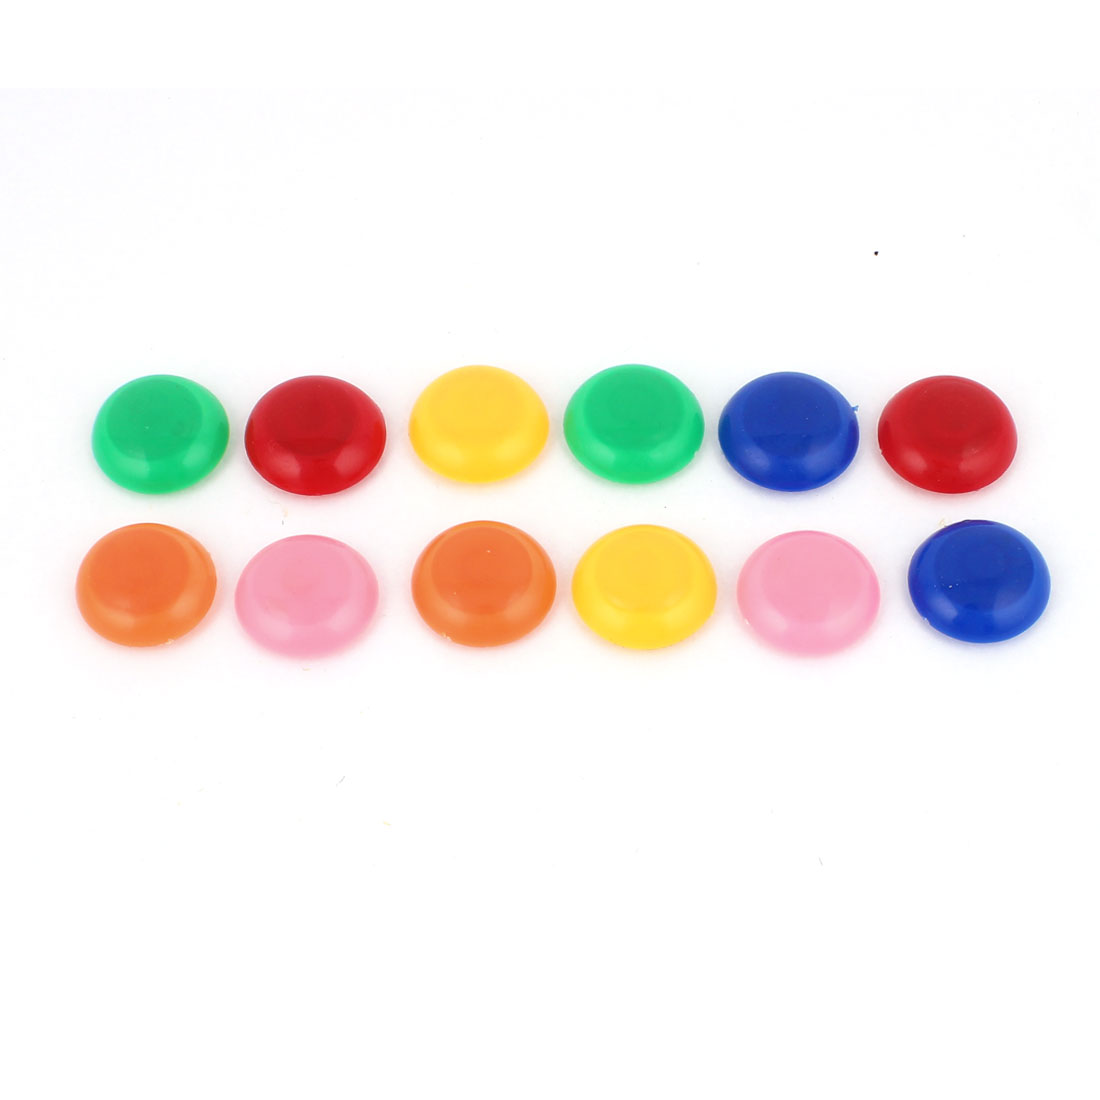 12 Pcs 30mm Dia Assorted Color Plastic Round Cover Blackboard Whiteboard Fridge Magnetic Sticker